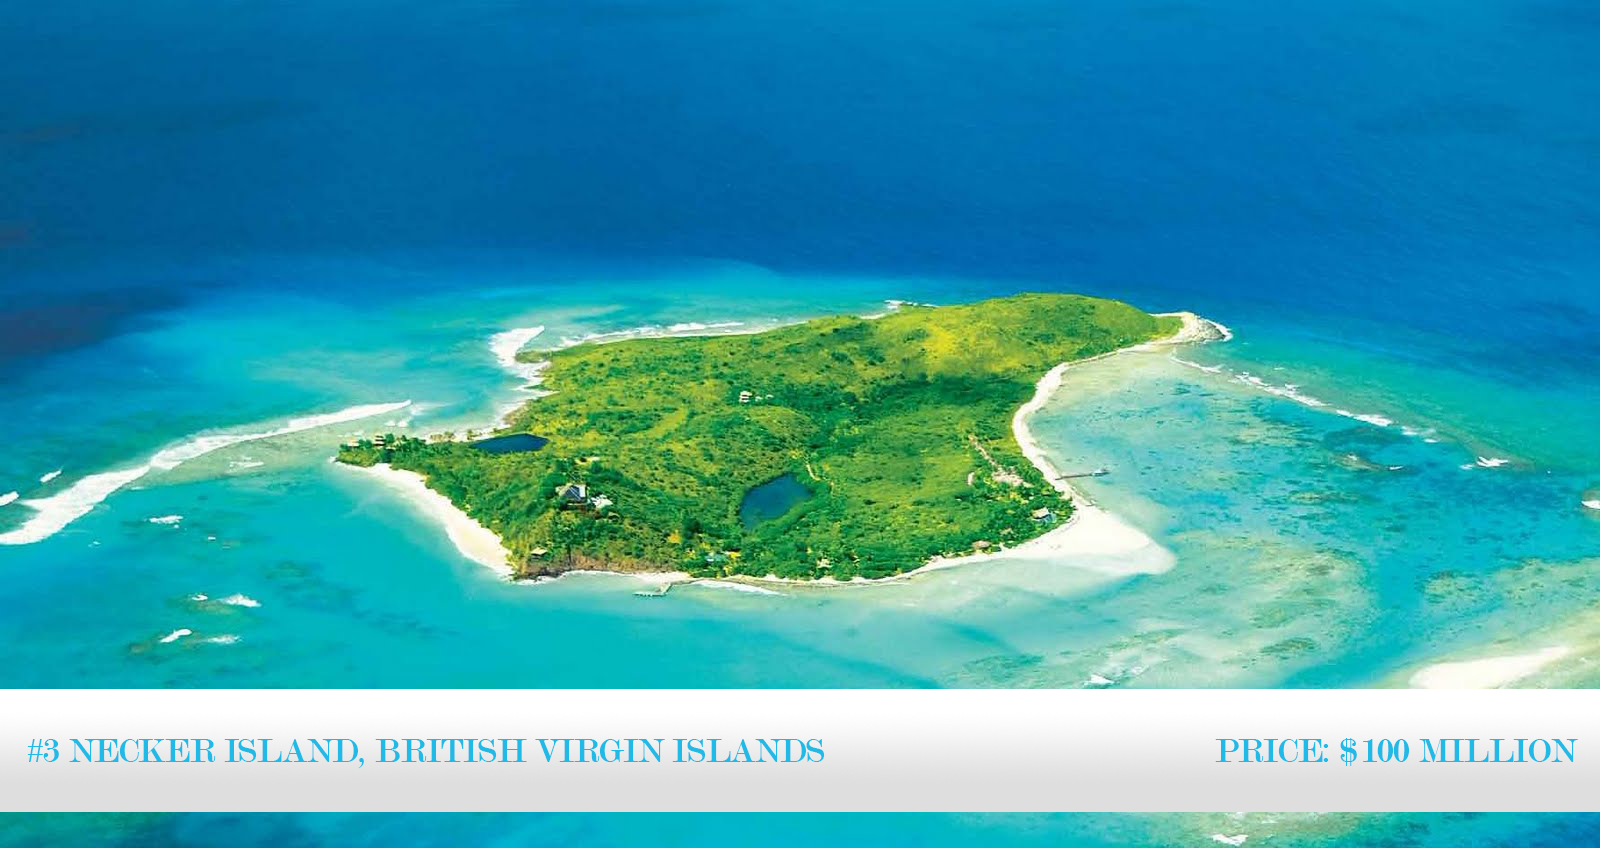 World's Most Expensive Islands 2013: #3 Necker Island, British Virgin Islands. ~ Price: $100 million